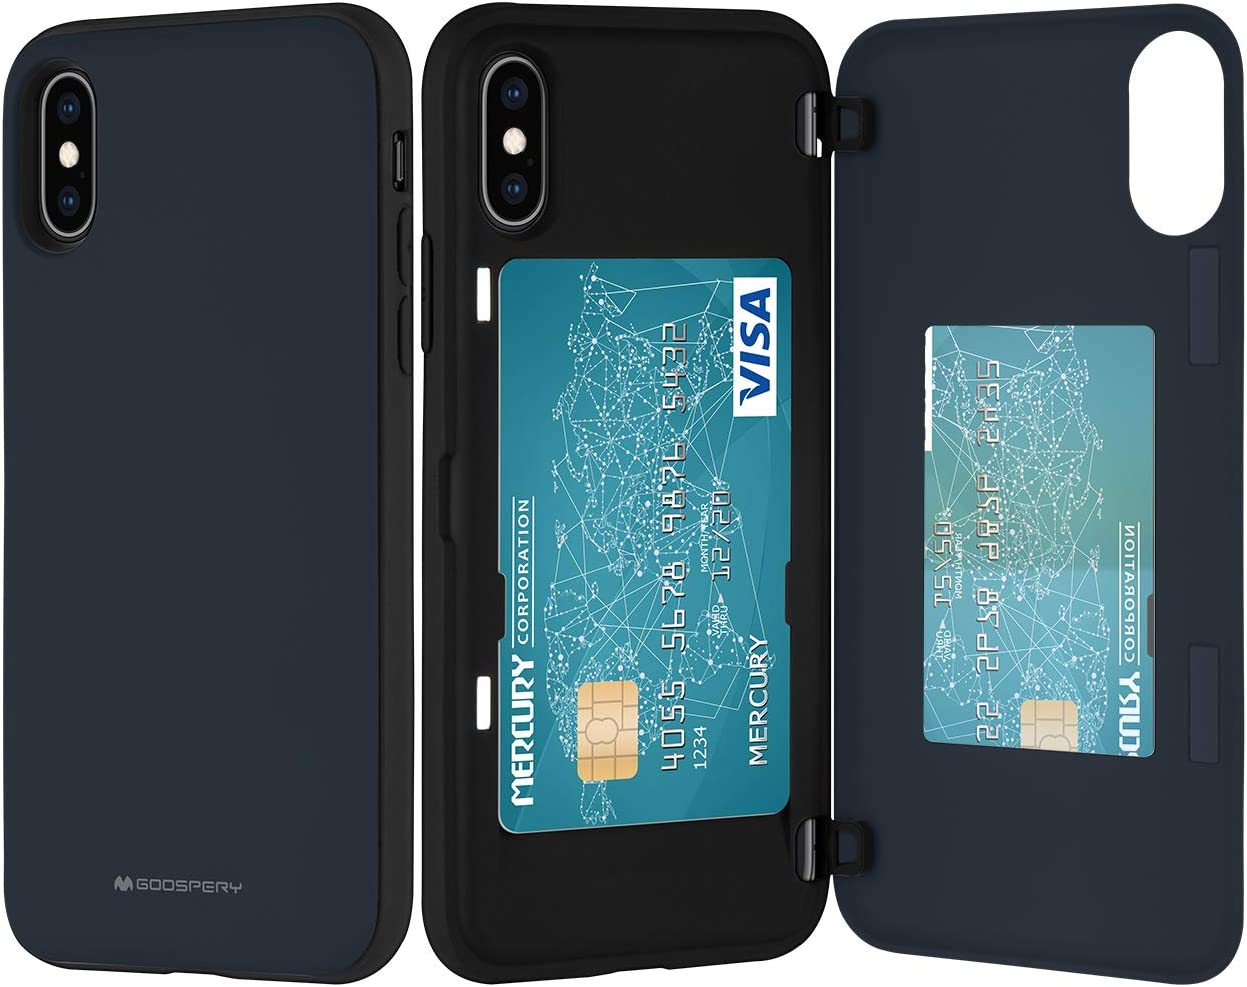 Goospery iPhone Xs Case, iPhone X Wallet Case with Card Holder, Protective Dual Layer Bumper Phone Case (Midnight Blue) IPX-MDB-NVY